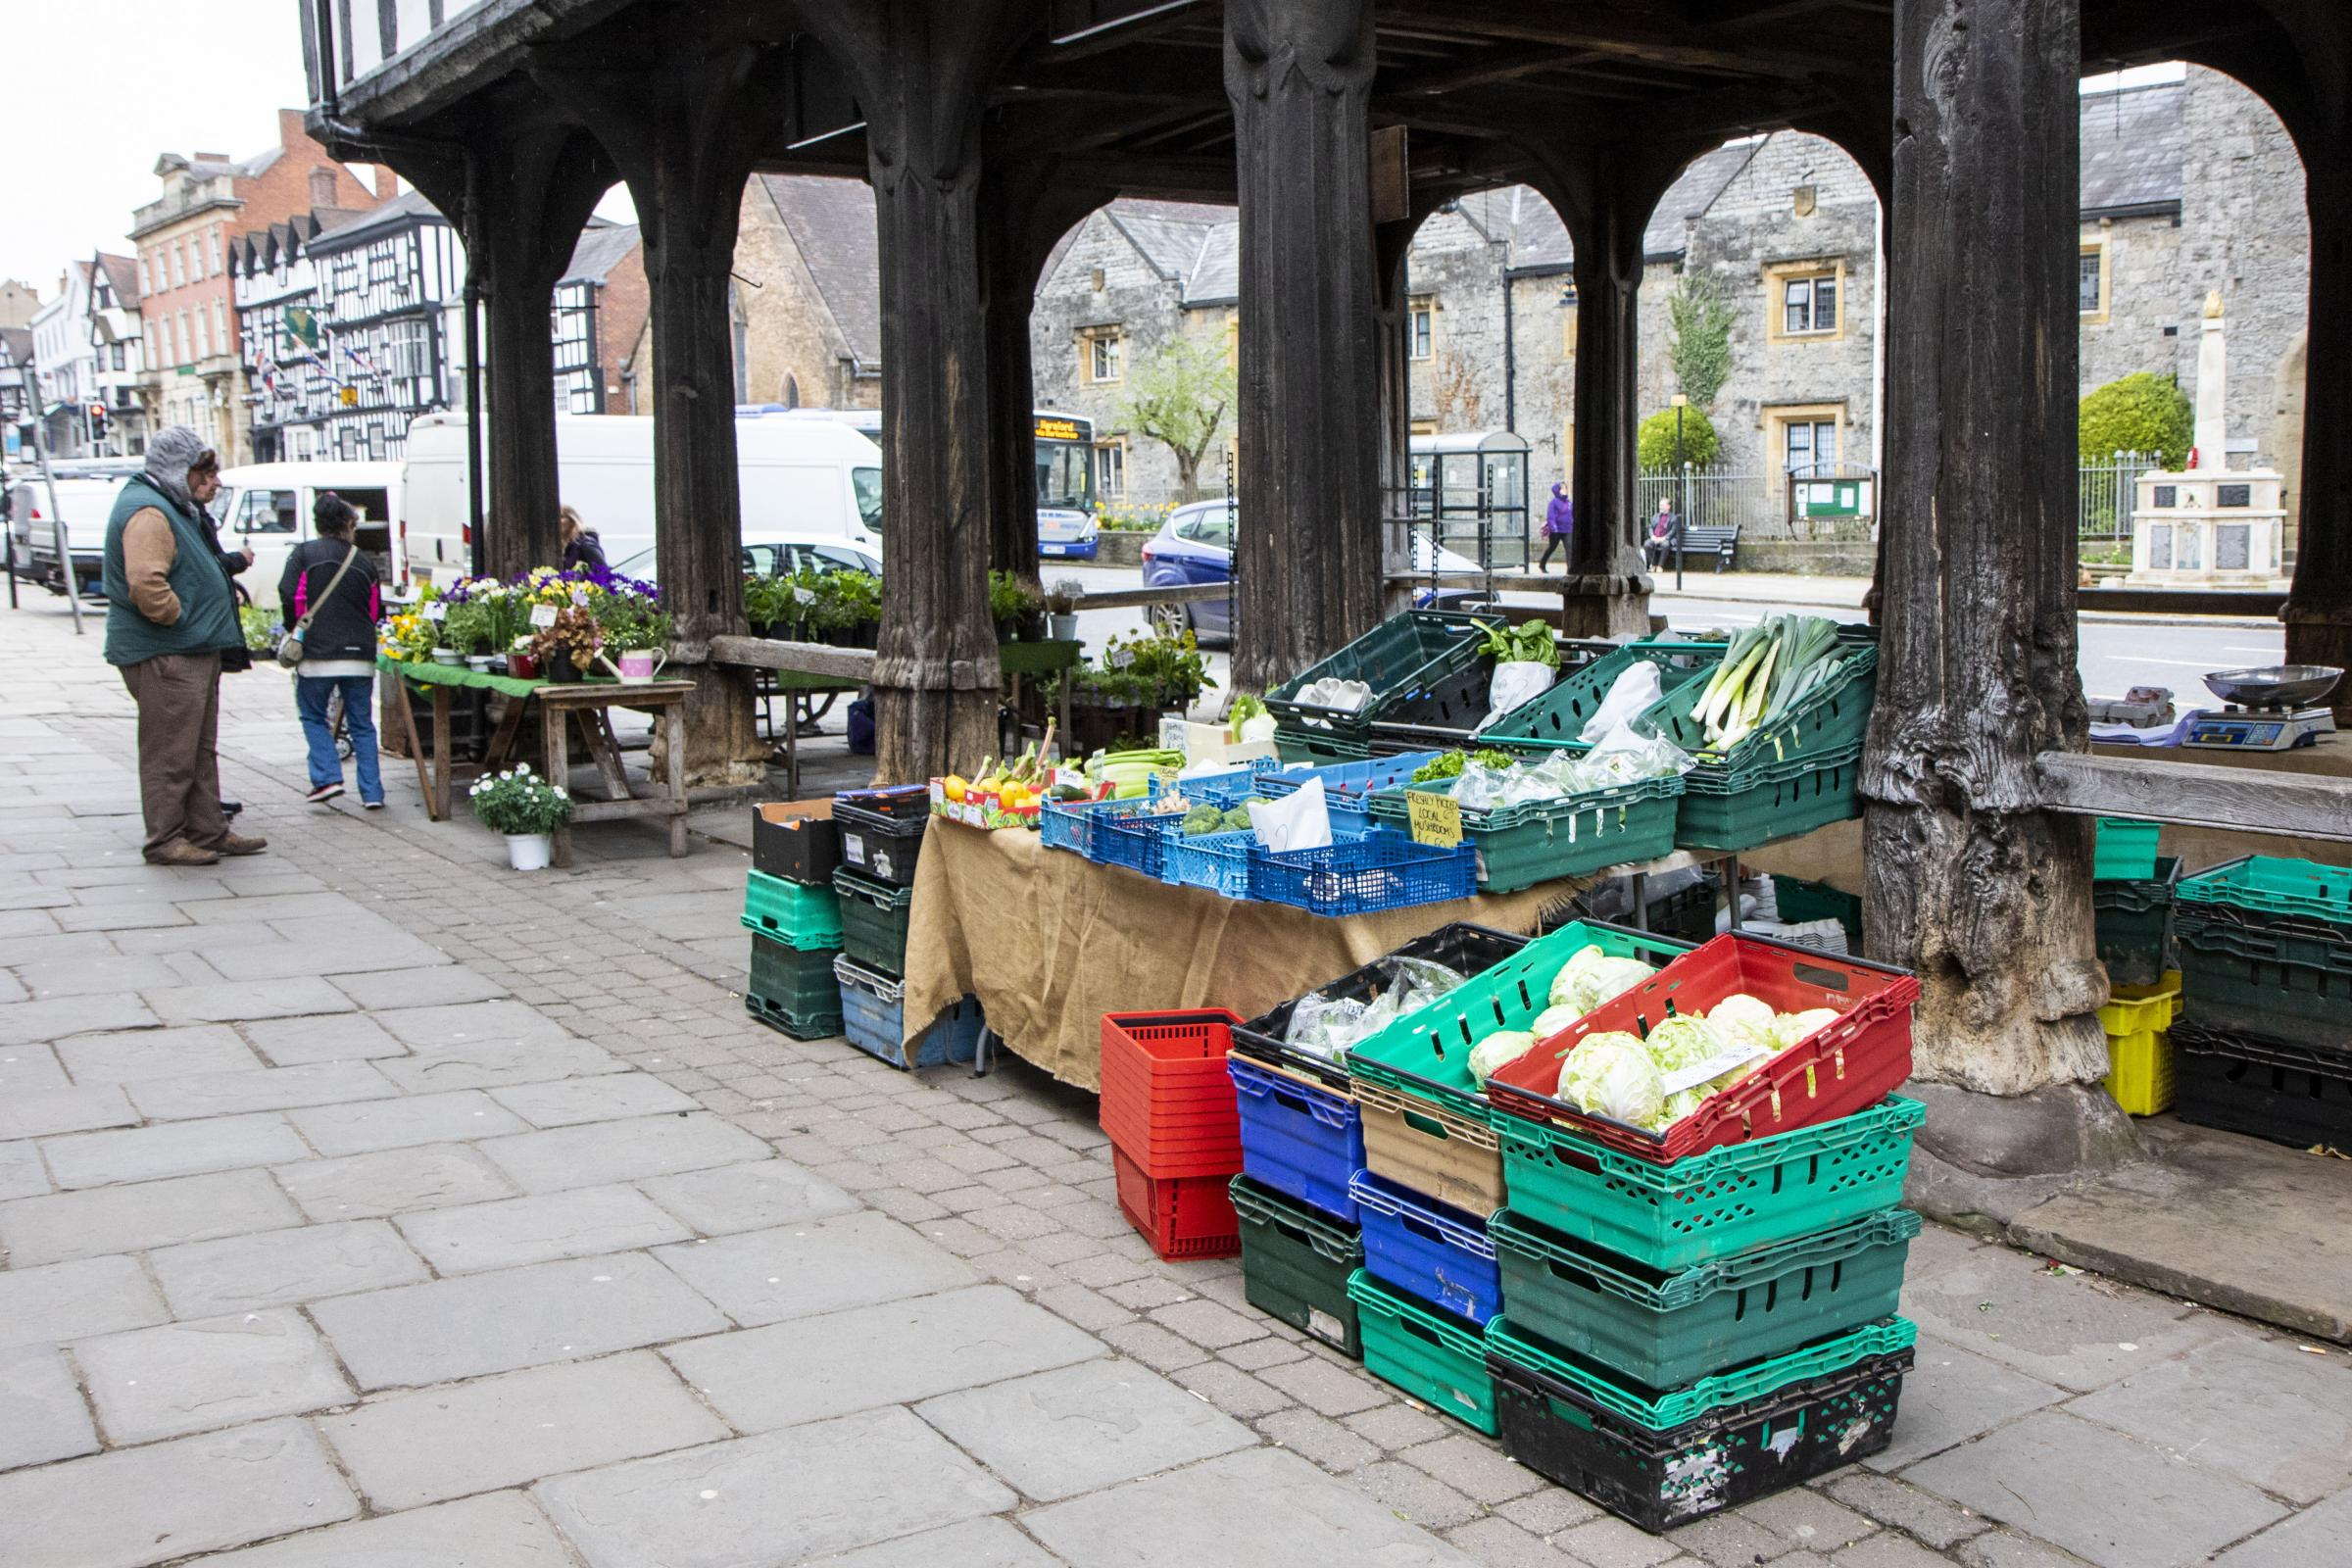 TRADITIONAL: Fresh produce on sale at Ledbury's Charter Market. But could there soon be stalls for political parties?